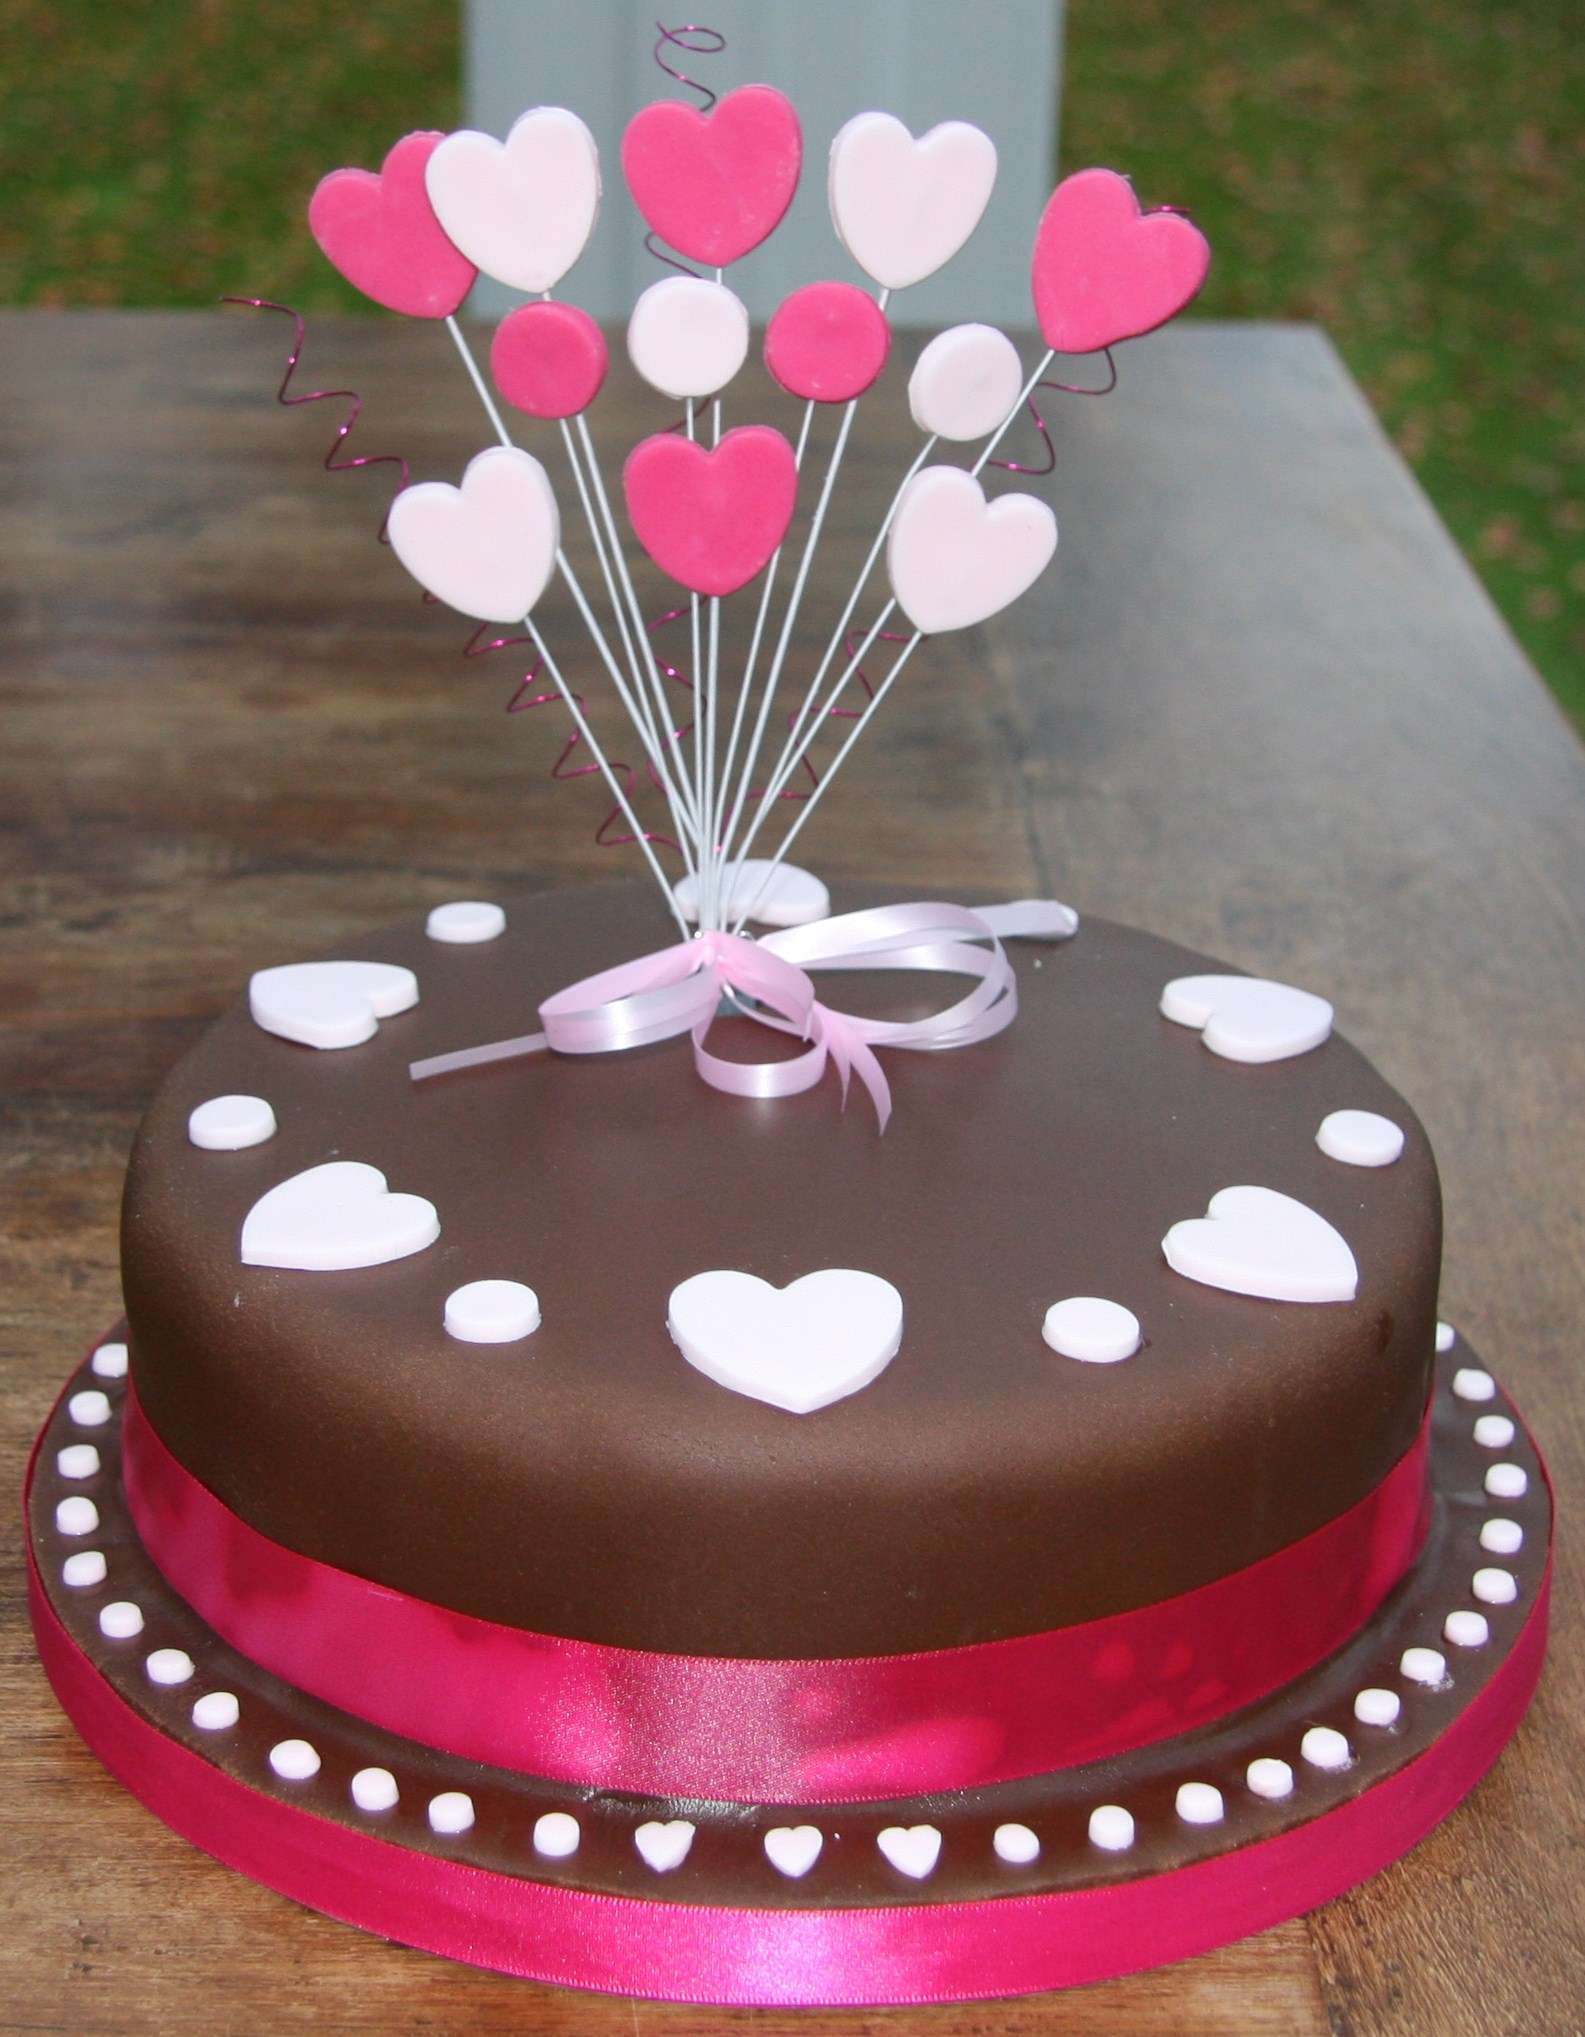 Cake Designs And Pictures : Chocolate Birthday Cake with Hearts   lovinghomemade